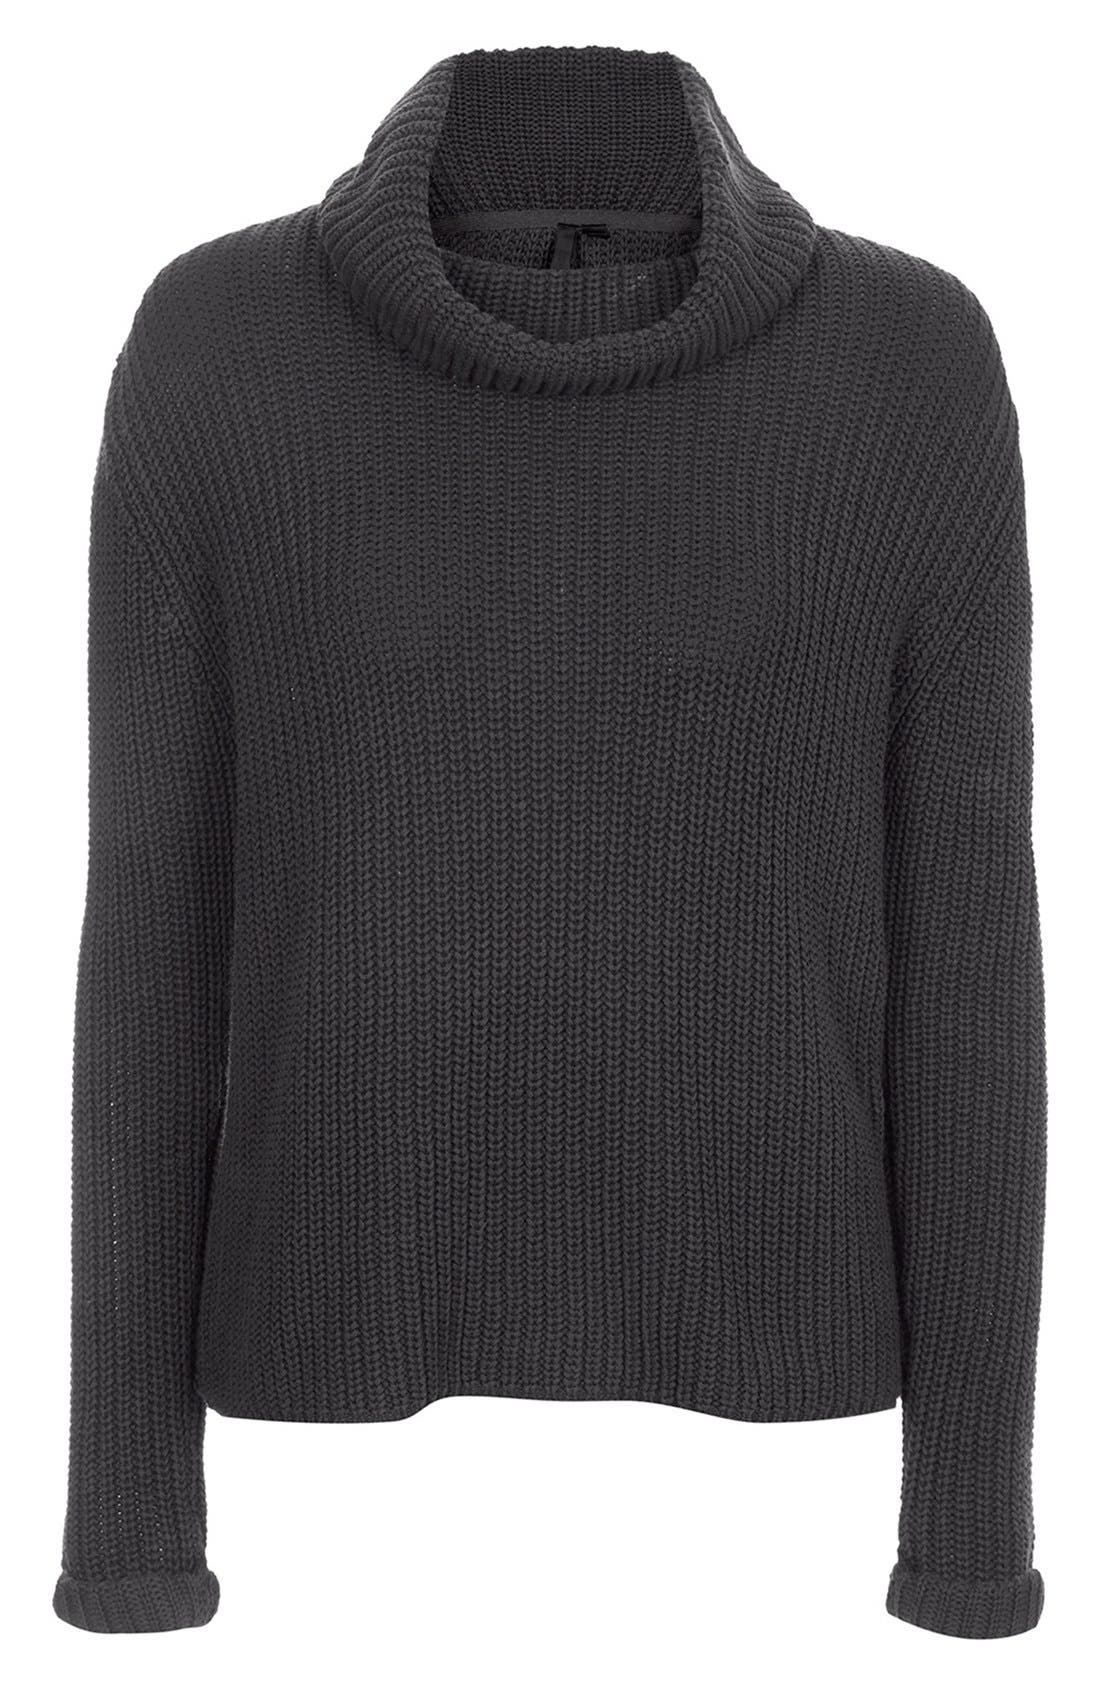 TOPSHOP BOUTIQUE,                             Roll Neck Fisherman Sweater,                             Alternate thumbnail 4, color,                             021